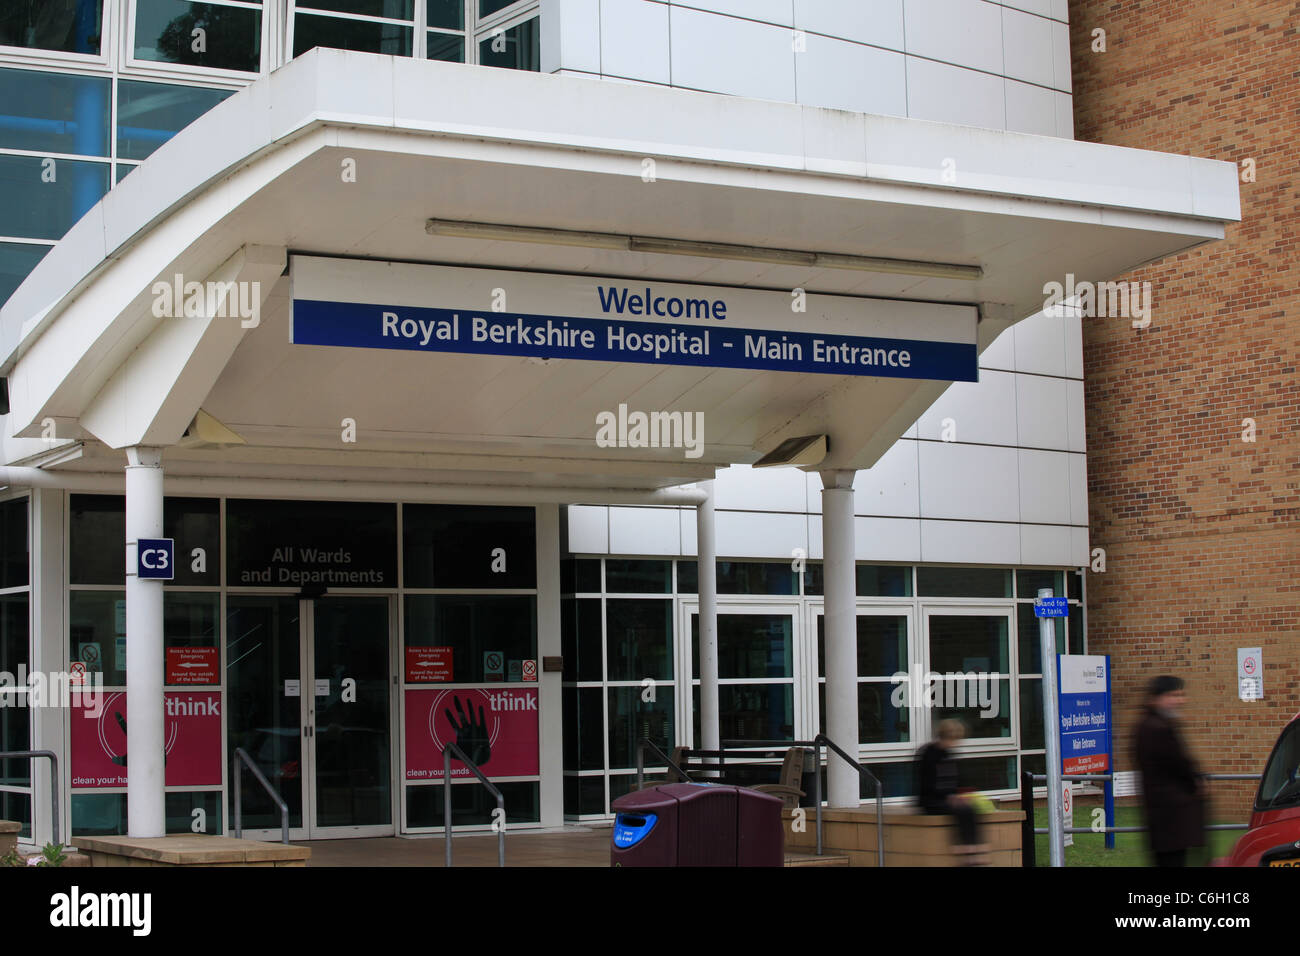 Royal Berkshire Hospital NHS Lectura entrada Imagen De Stock